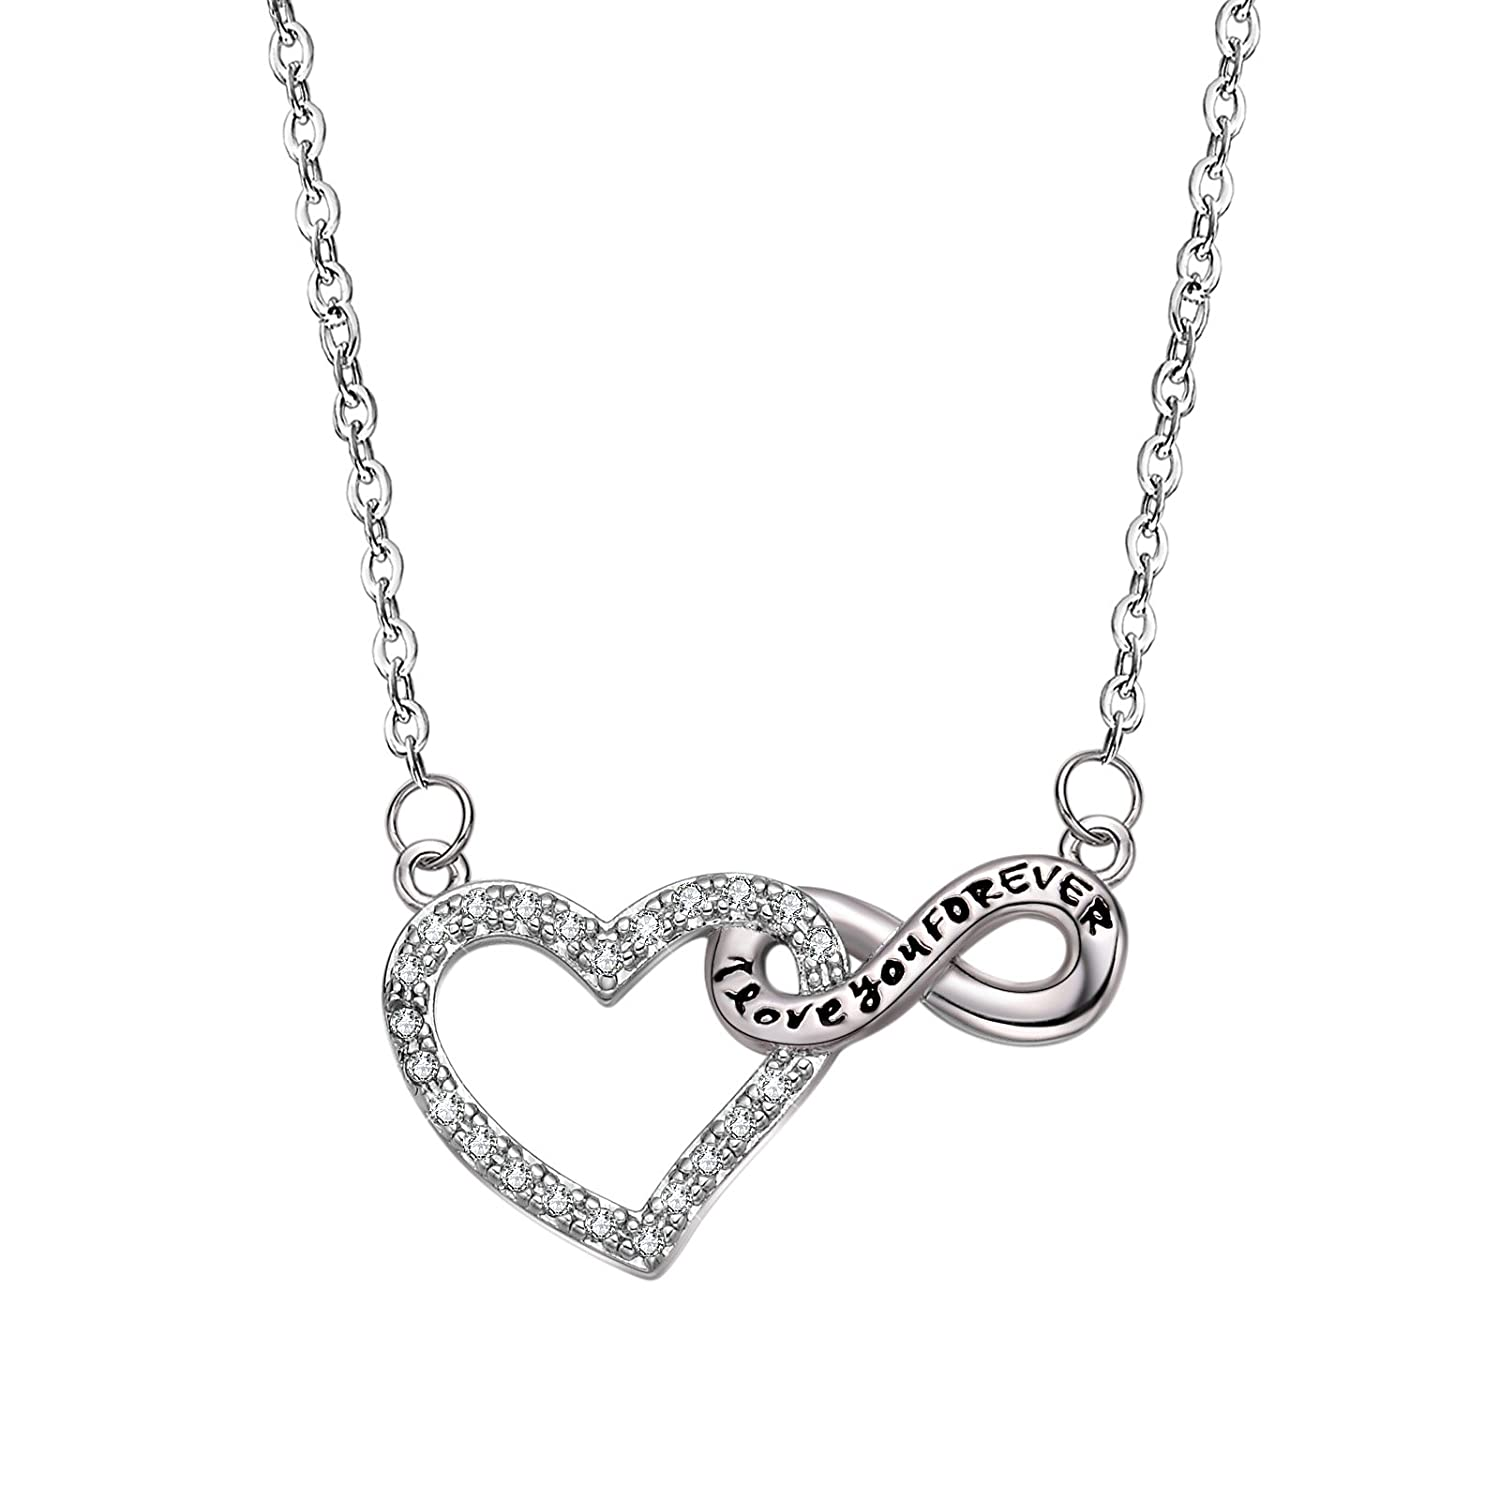 40e4fe4b7 Amazon.com: Anna Crystal Jewellery 925 Sterling Silver Infinity Heart  Promise White Gold Plated Necklace Gift for Women Girls Wife Mom: Jewelry